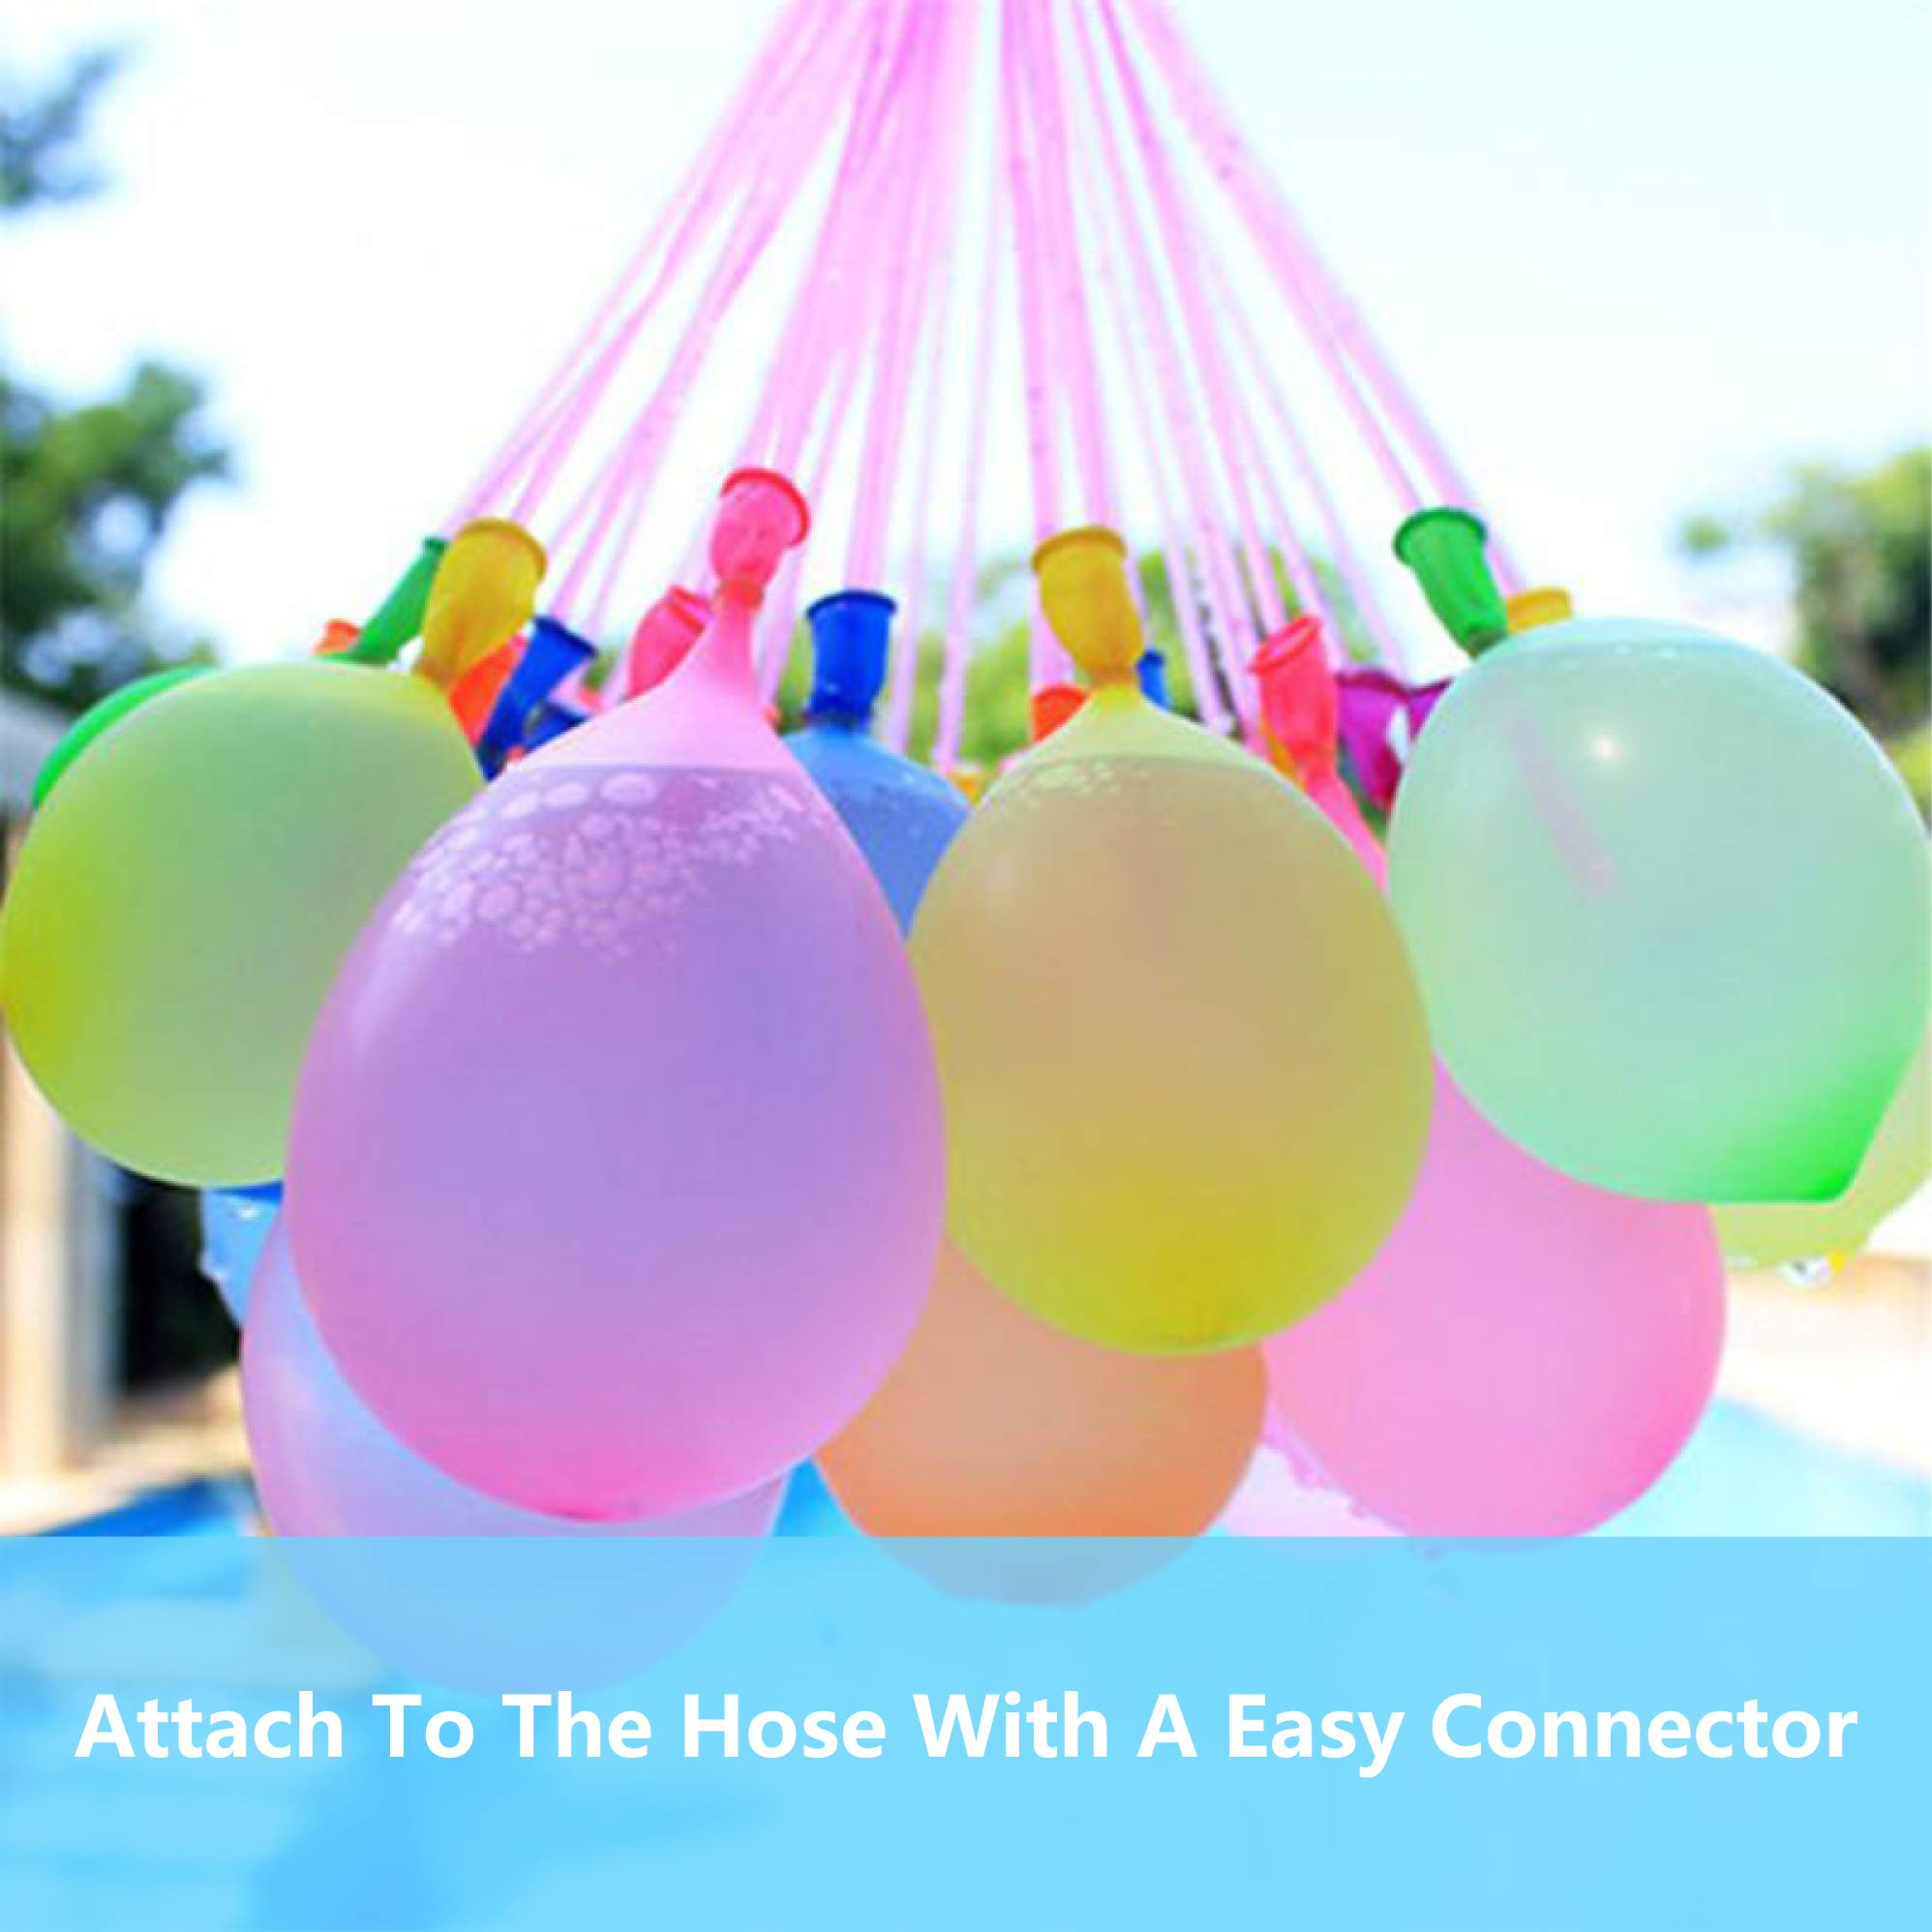 Water Balloons for Kids Girls Boys Balloons Set Party Games Quick Fill Water Balloons 594 Bunches Swimming Pool Outdoor Summer Fun A6 by Magic balloons (Image #3)